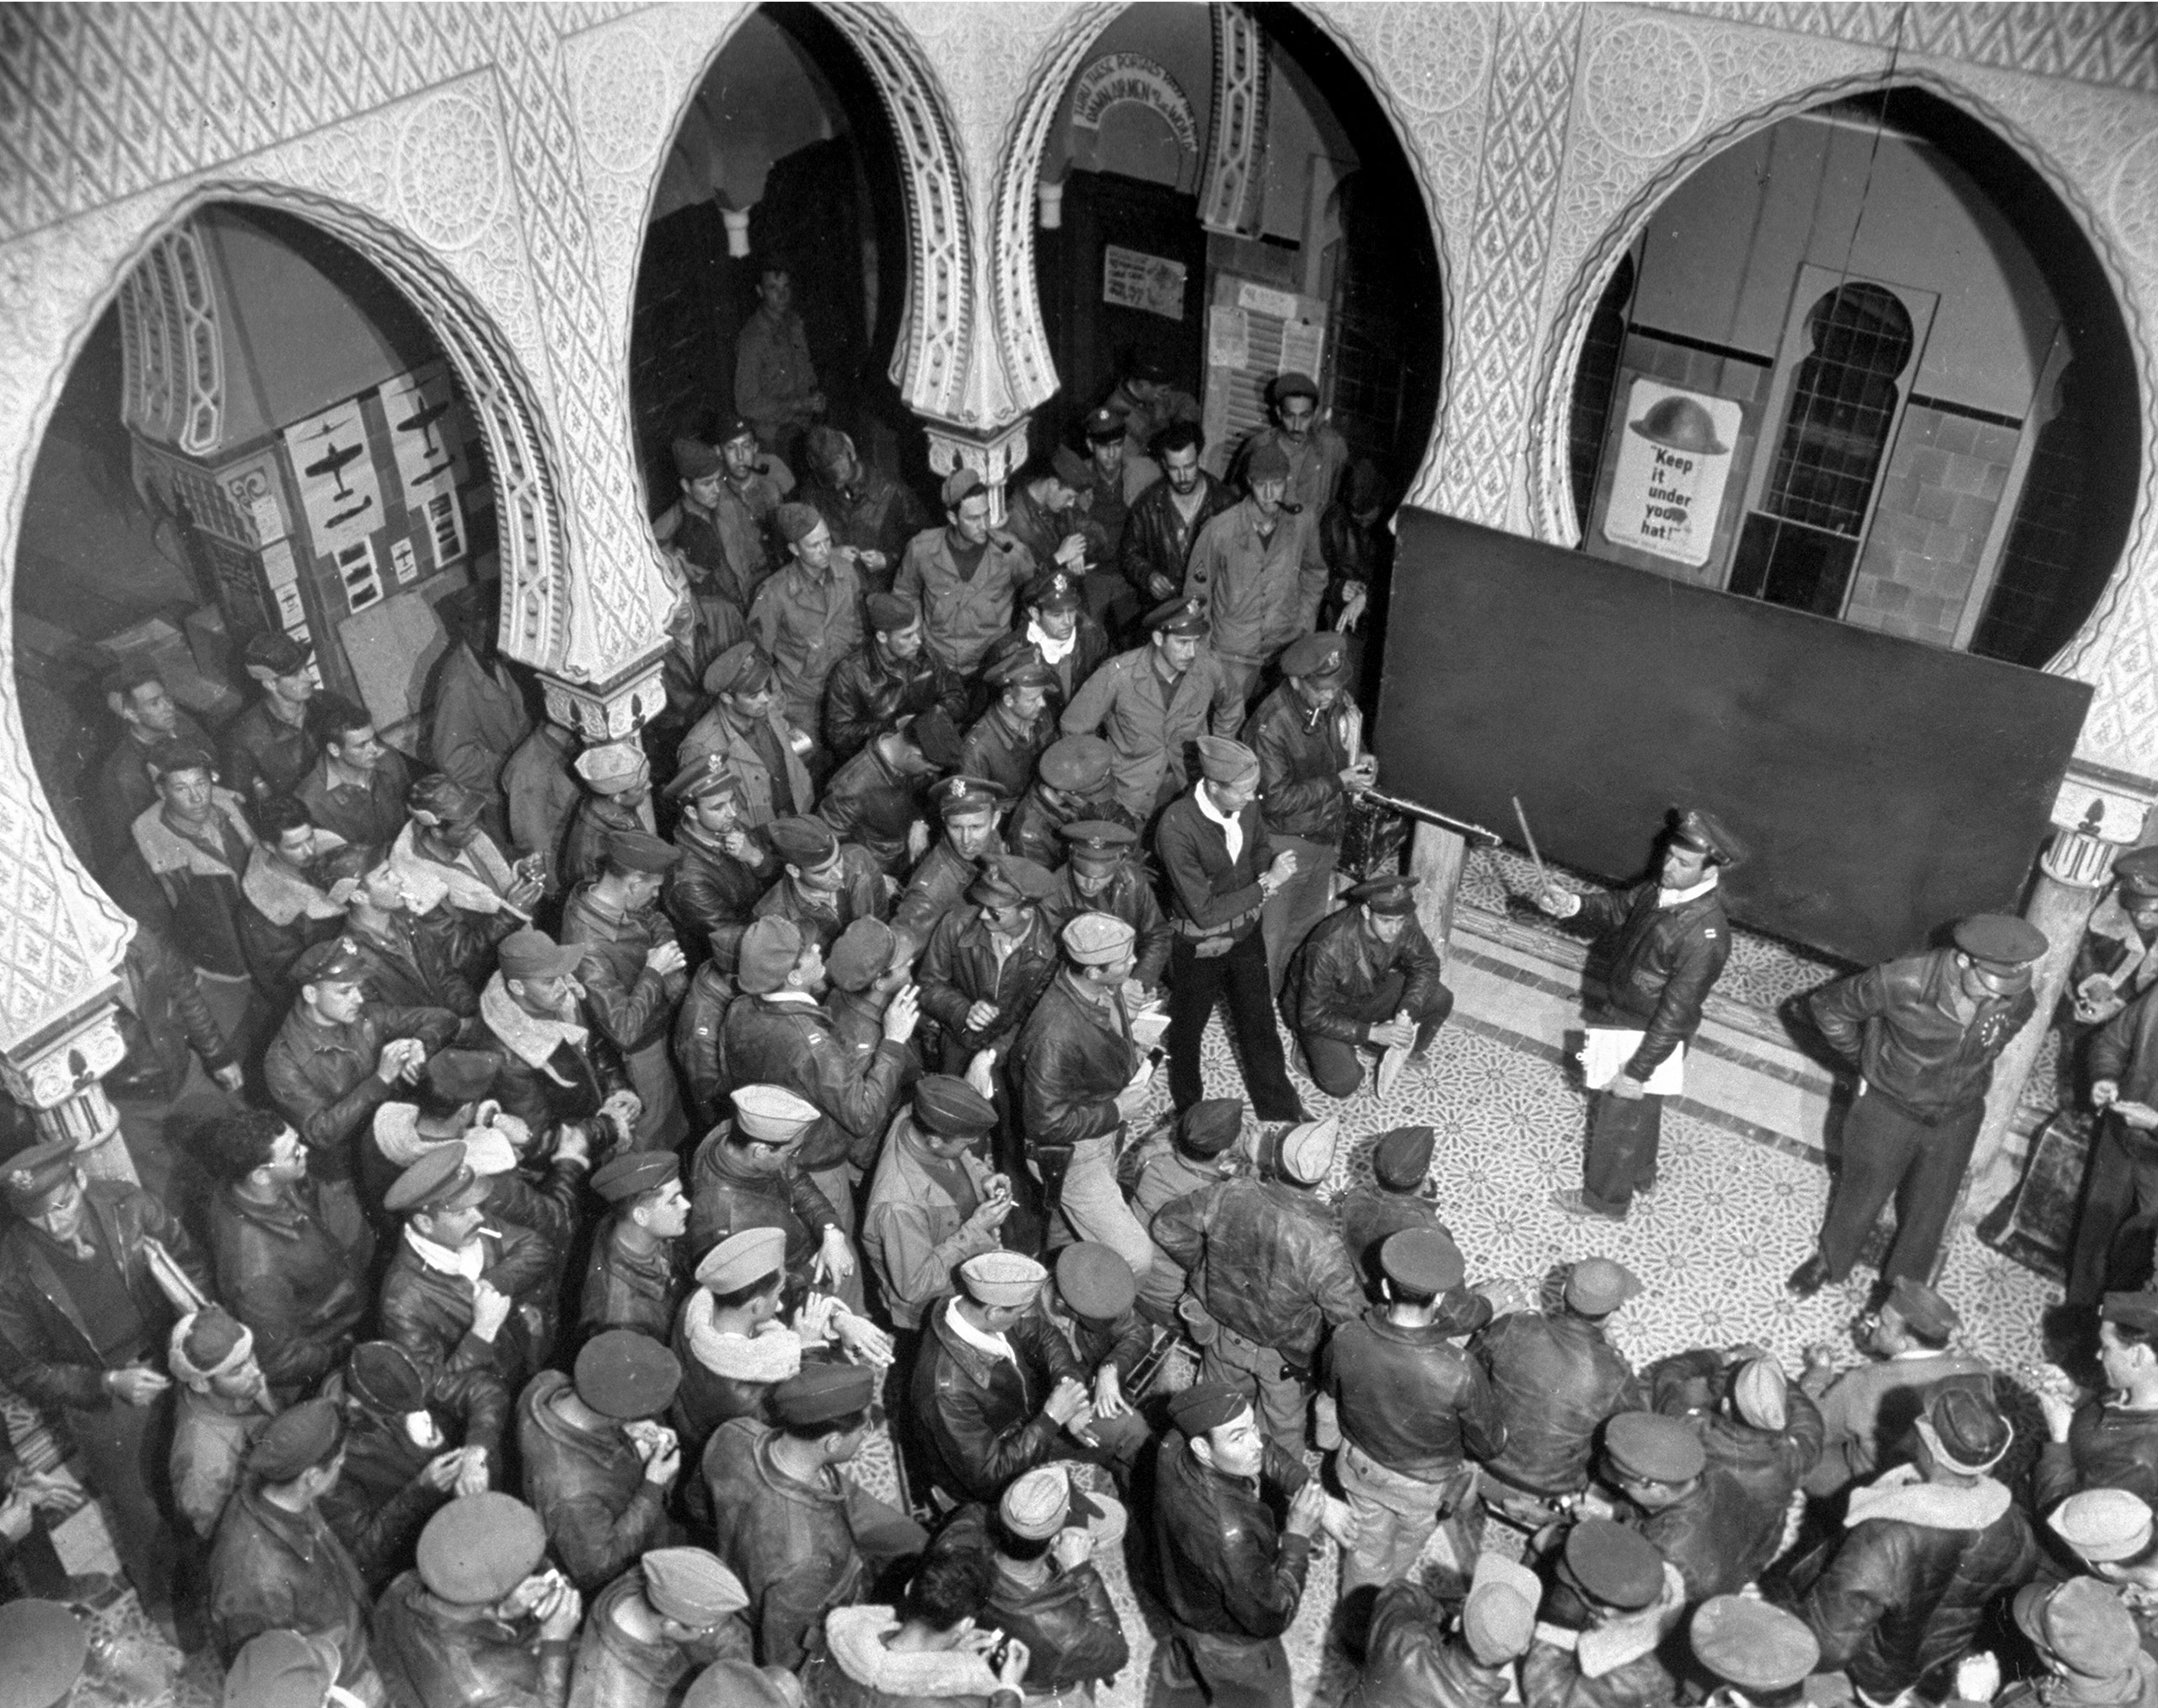 <b>Caption from LIFE.</b> Combat crew are briefed in the patio of an old desert palace now used by U.S. Air Force as an operations building. Scarcely an hour after the briefing, pilots and crews were in the air, Tunis-bound.